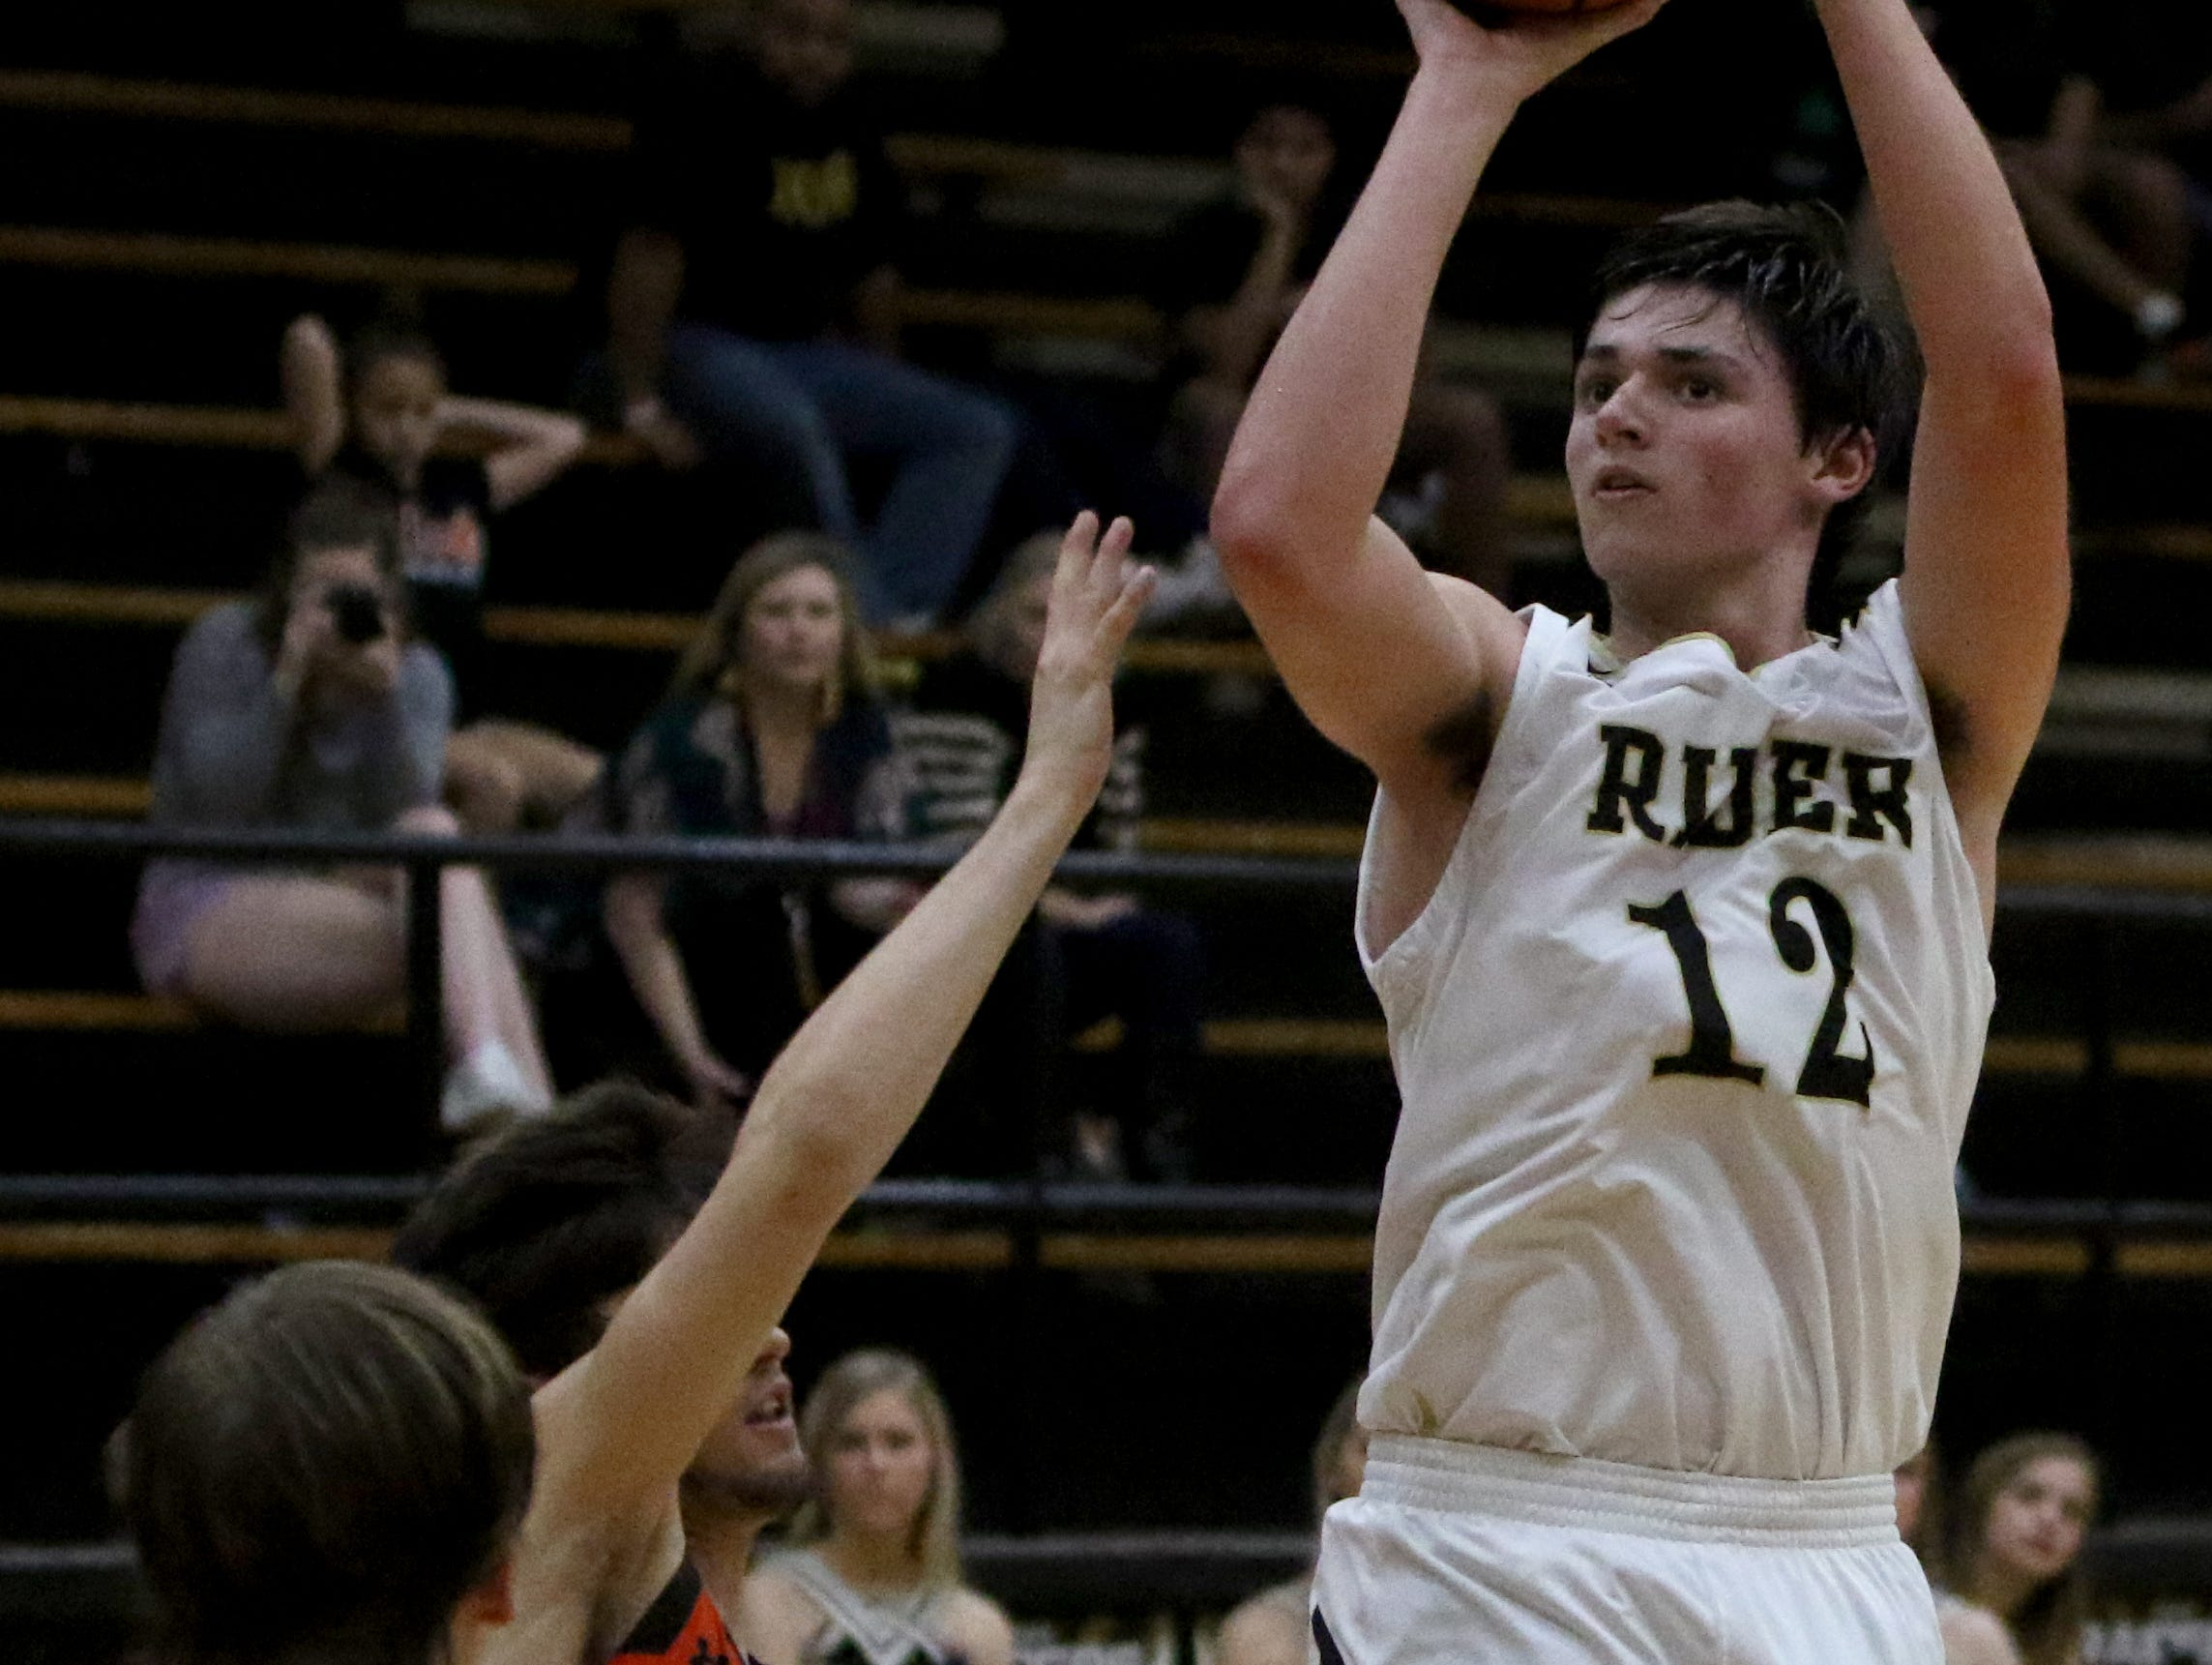 Rider's Ty Caswell shoots against Aledo Tuesday, Feb. 5, 2019, at Rider. The Raiders defeated the Bearcats 64-51.